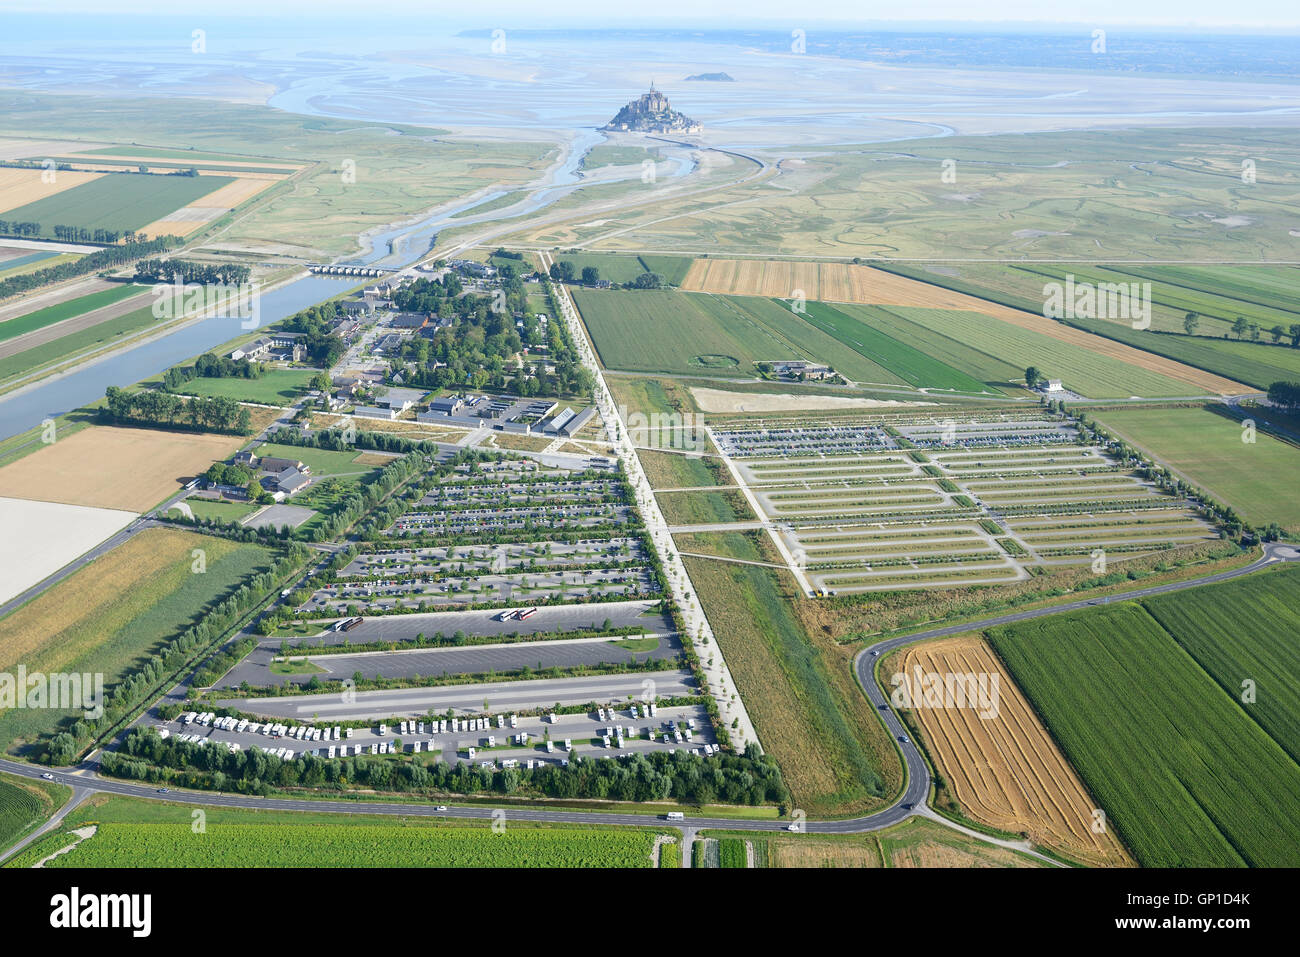 LARGE PARKING INFRASTRUCTURE FOR THE MONT SAINT-MICHEL'S VISITORS  (aerial view). Manche, Normandy, France. - Stock Image